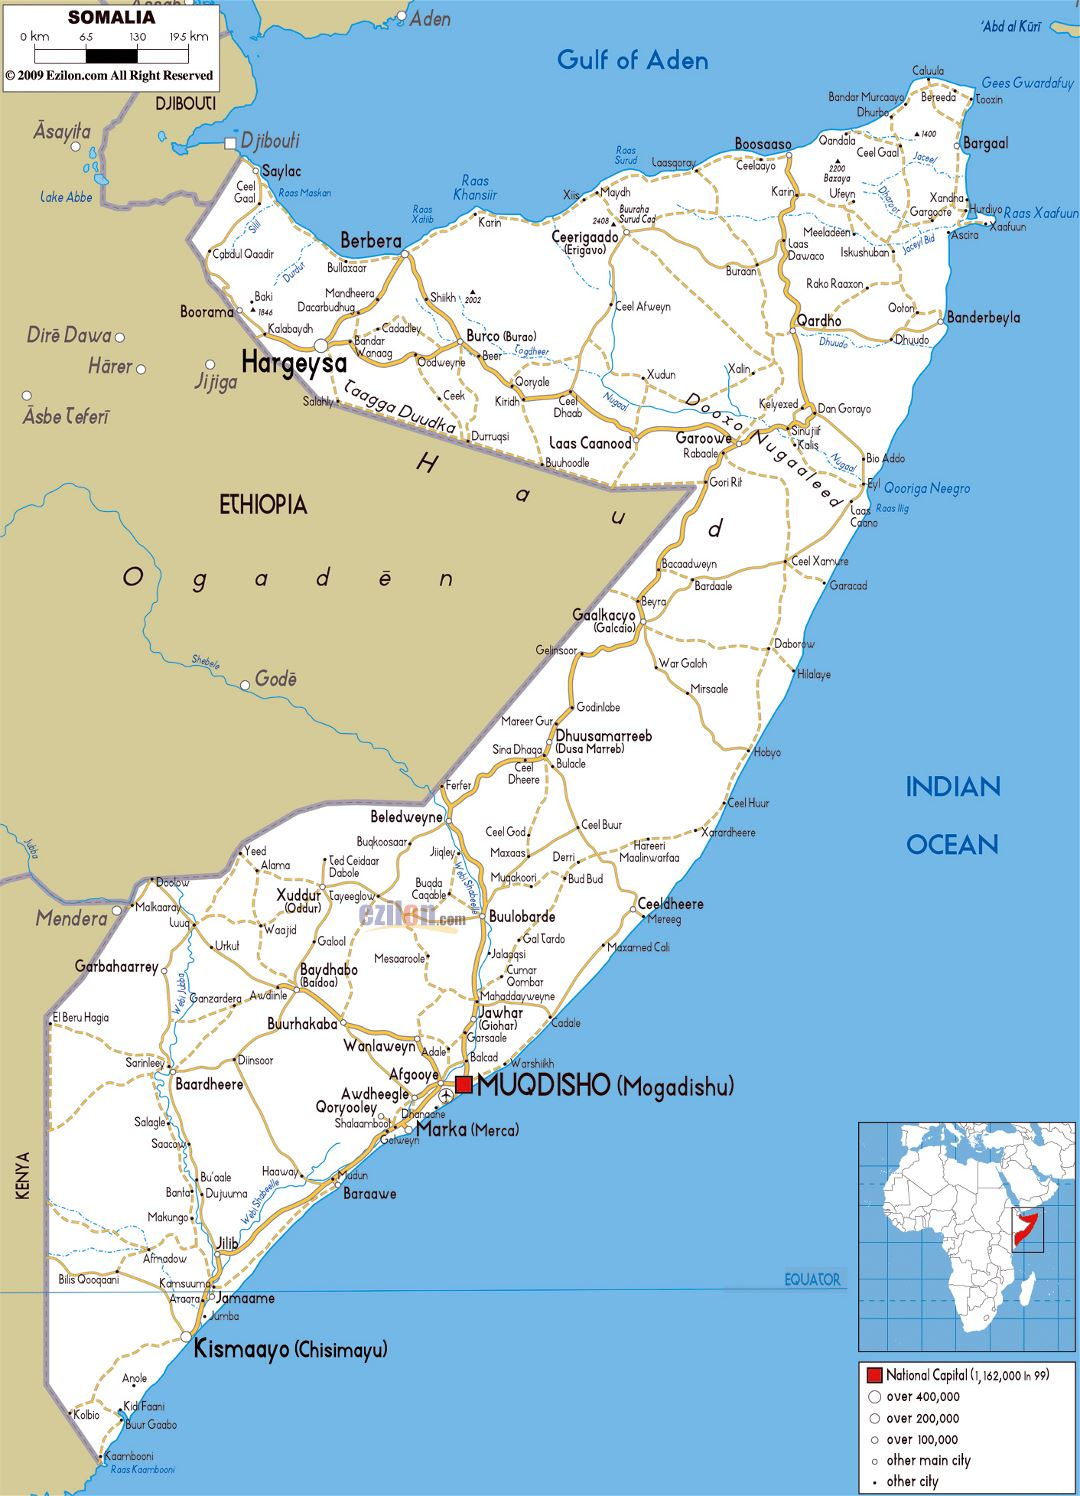 Large road map of Somalia with cities and airports